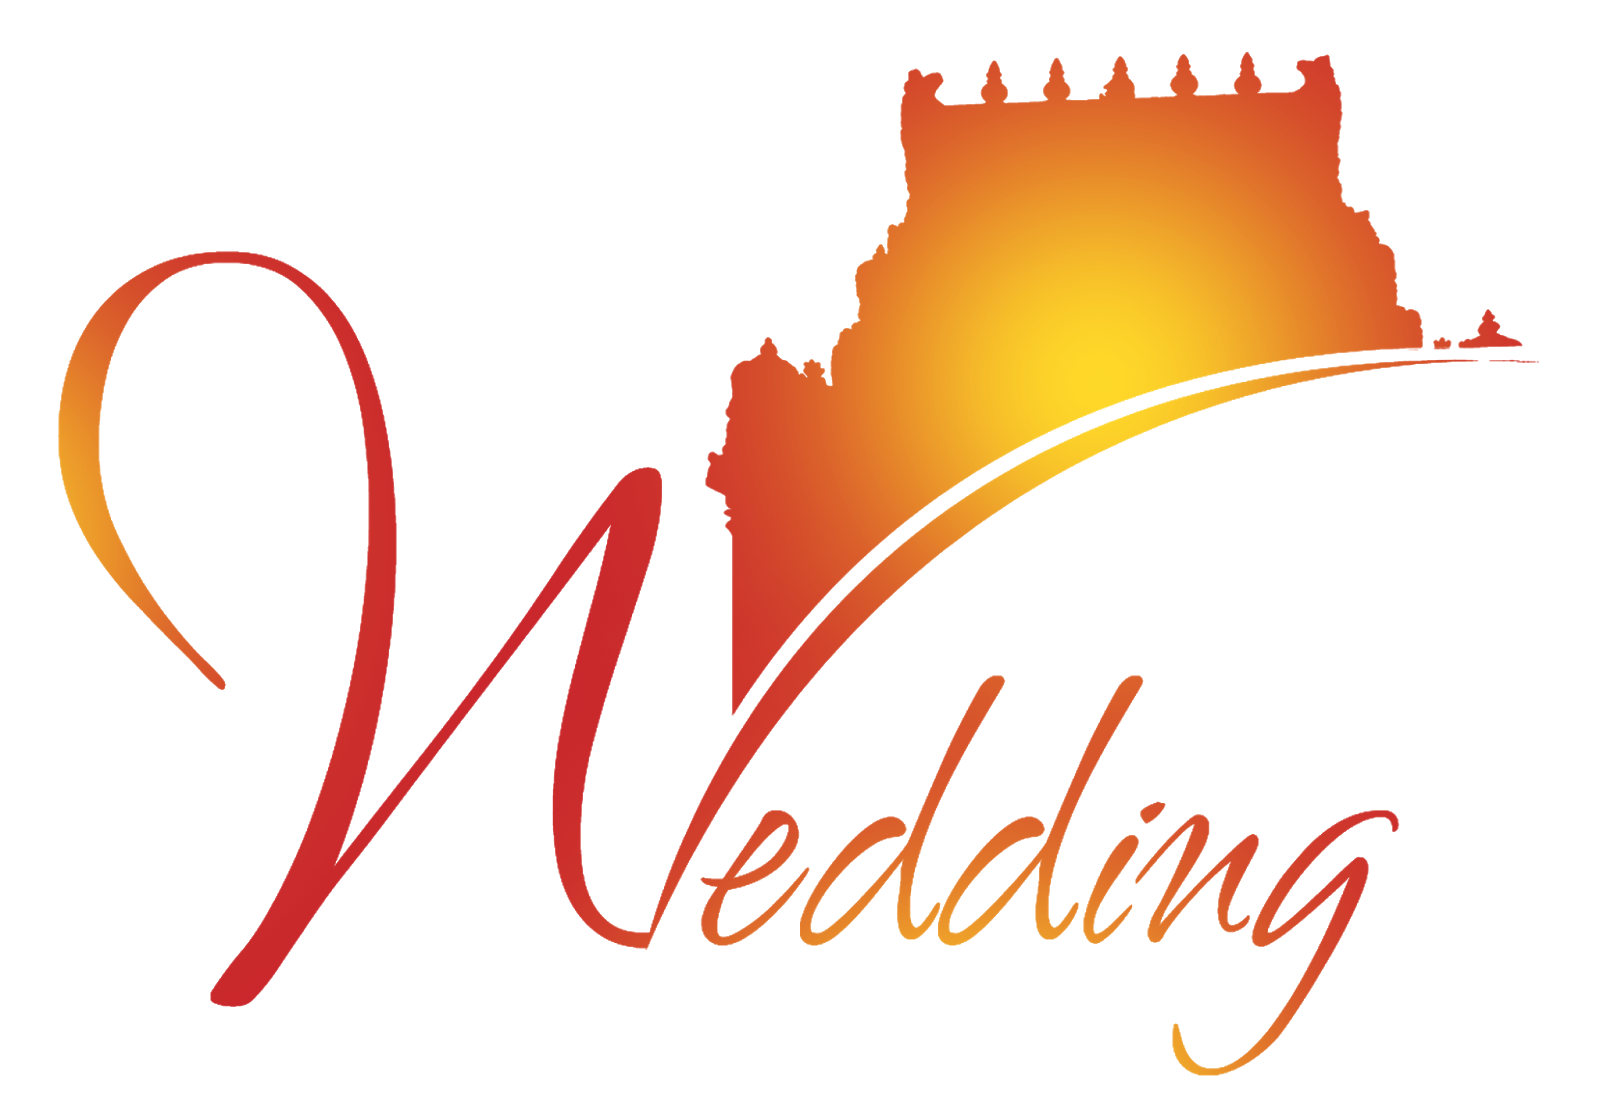 Wedding png images. Image background arts